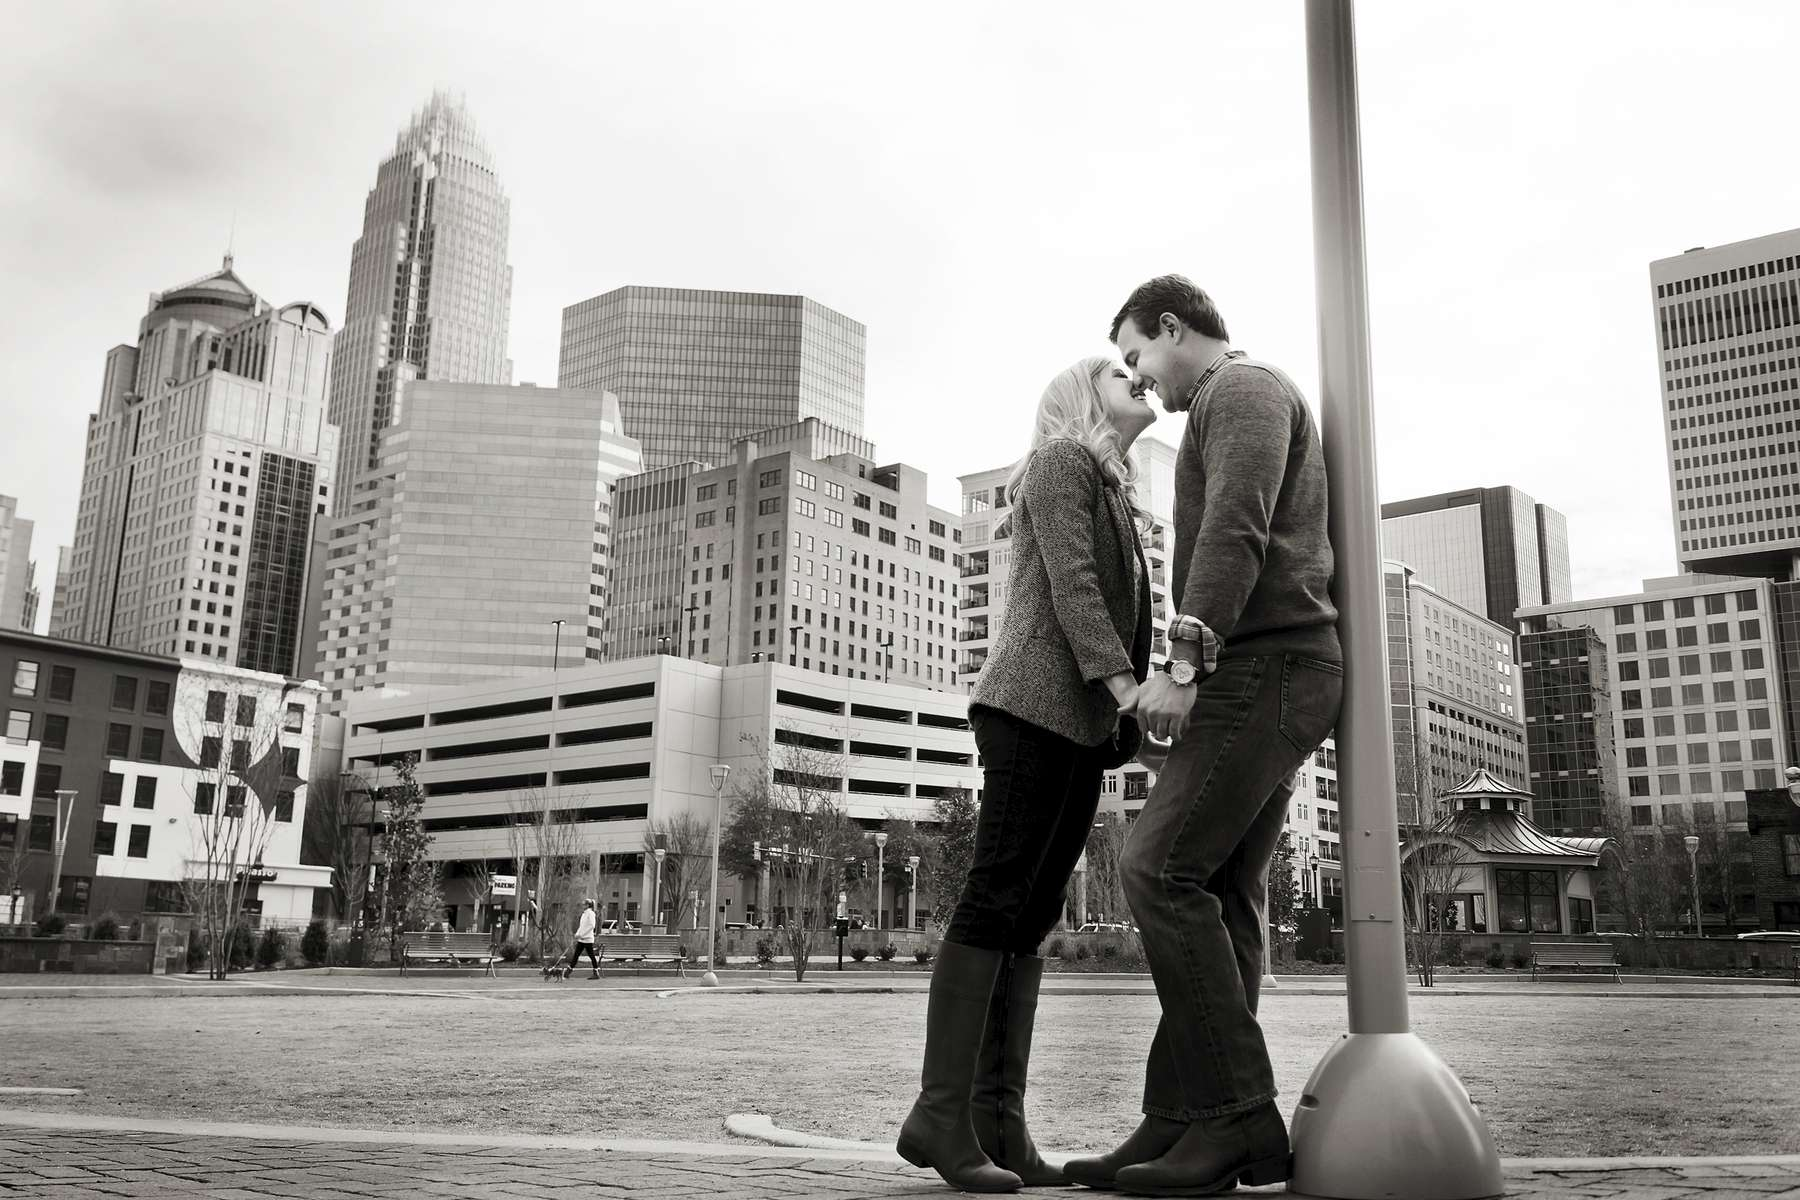 Charlotte Engagement Photography by Christopher Record Photography